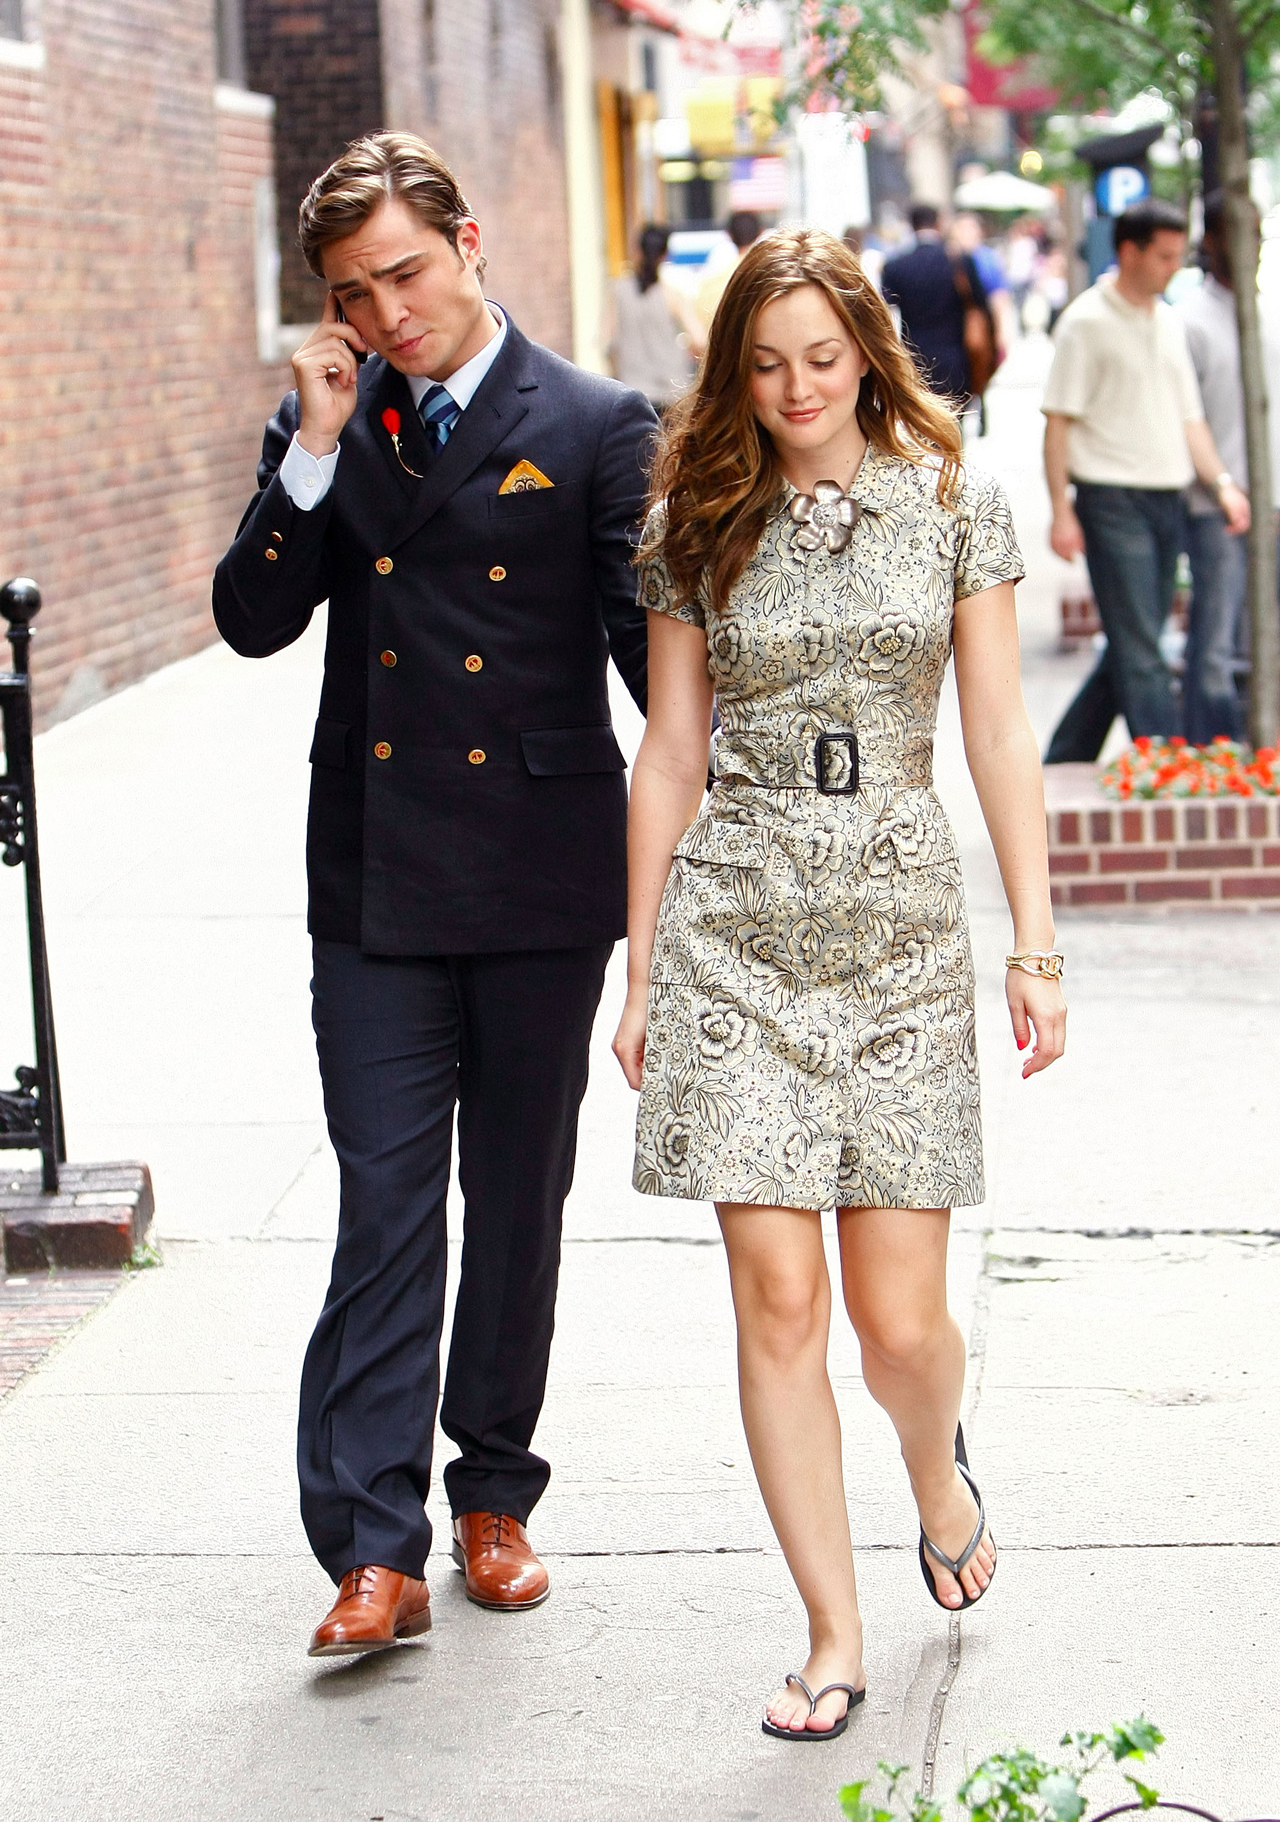 Are chuck and blair from gossip girl hookup in real life